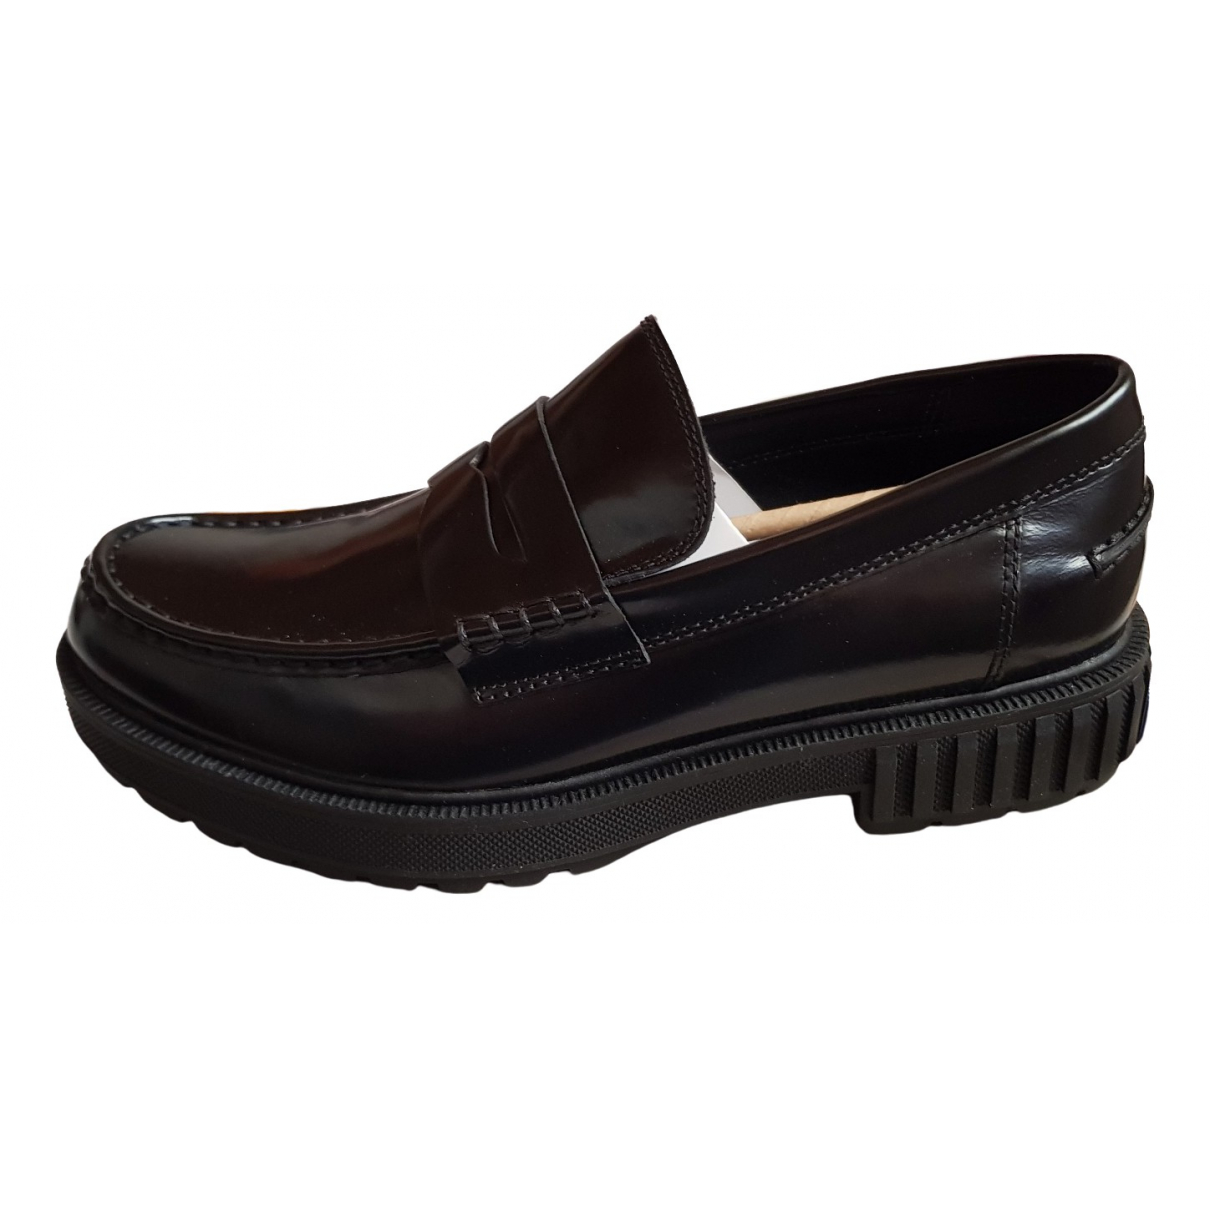 Calvin Klein \N Black Patent leather Flats for Men 42 EU